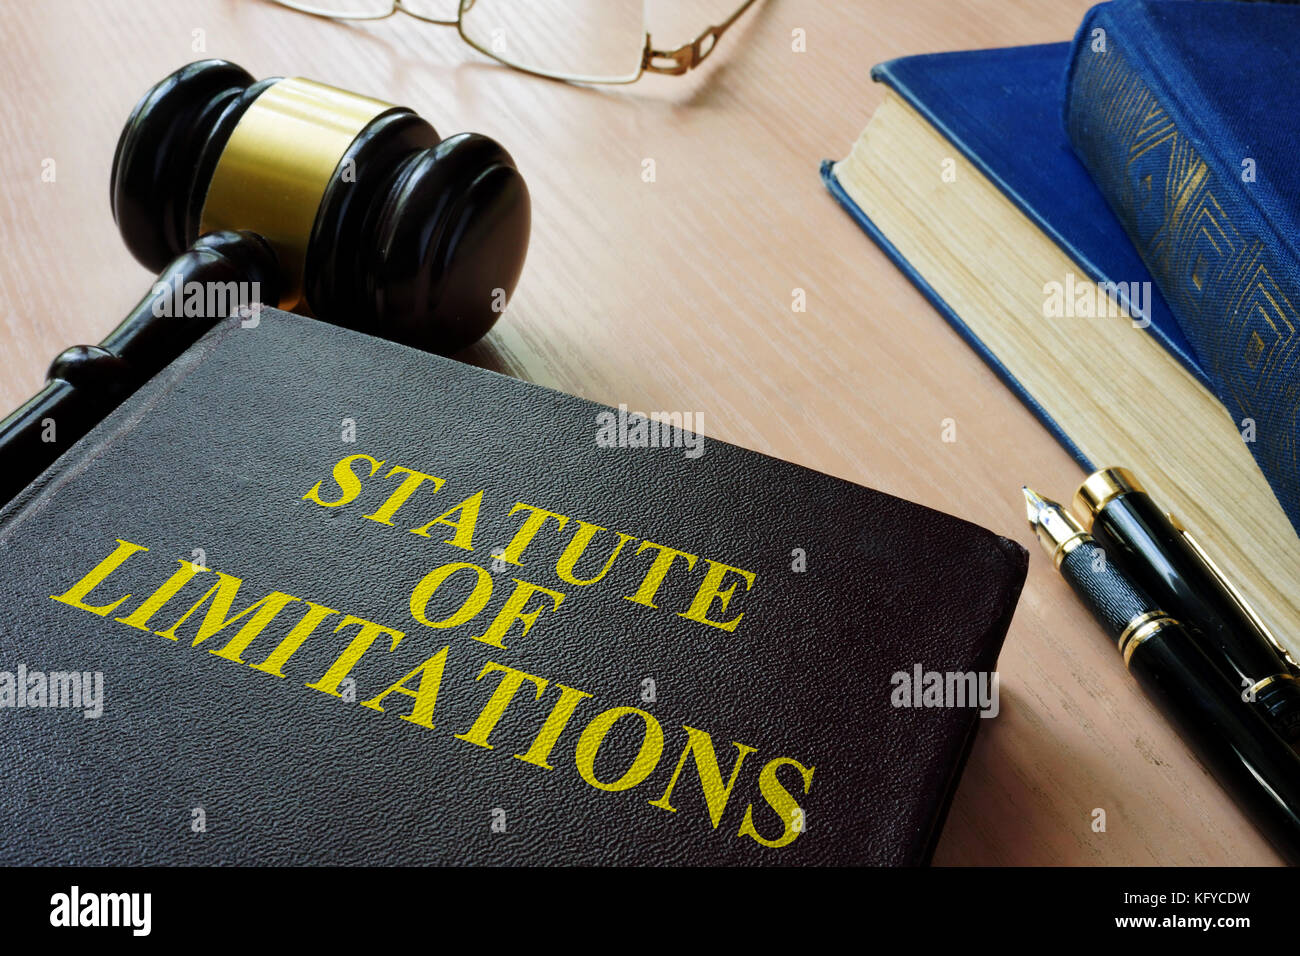 Statute of limitations (SOL) on a court desk. - Stock Image